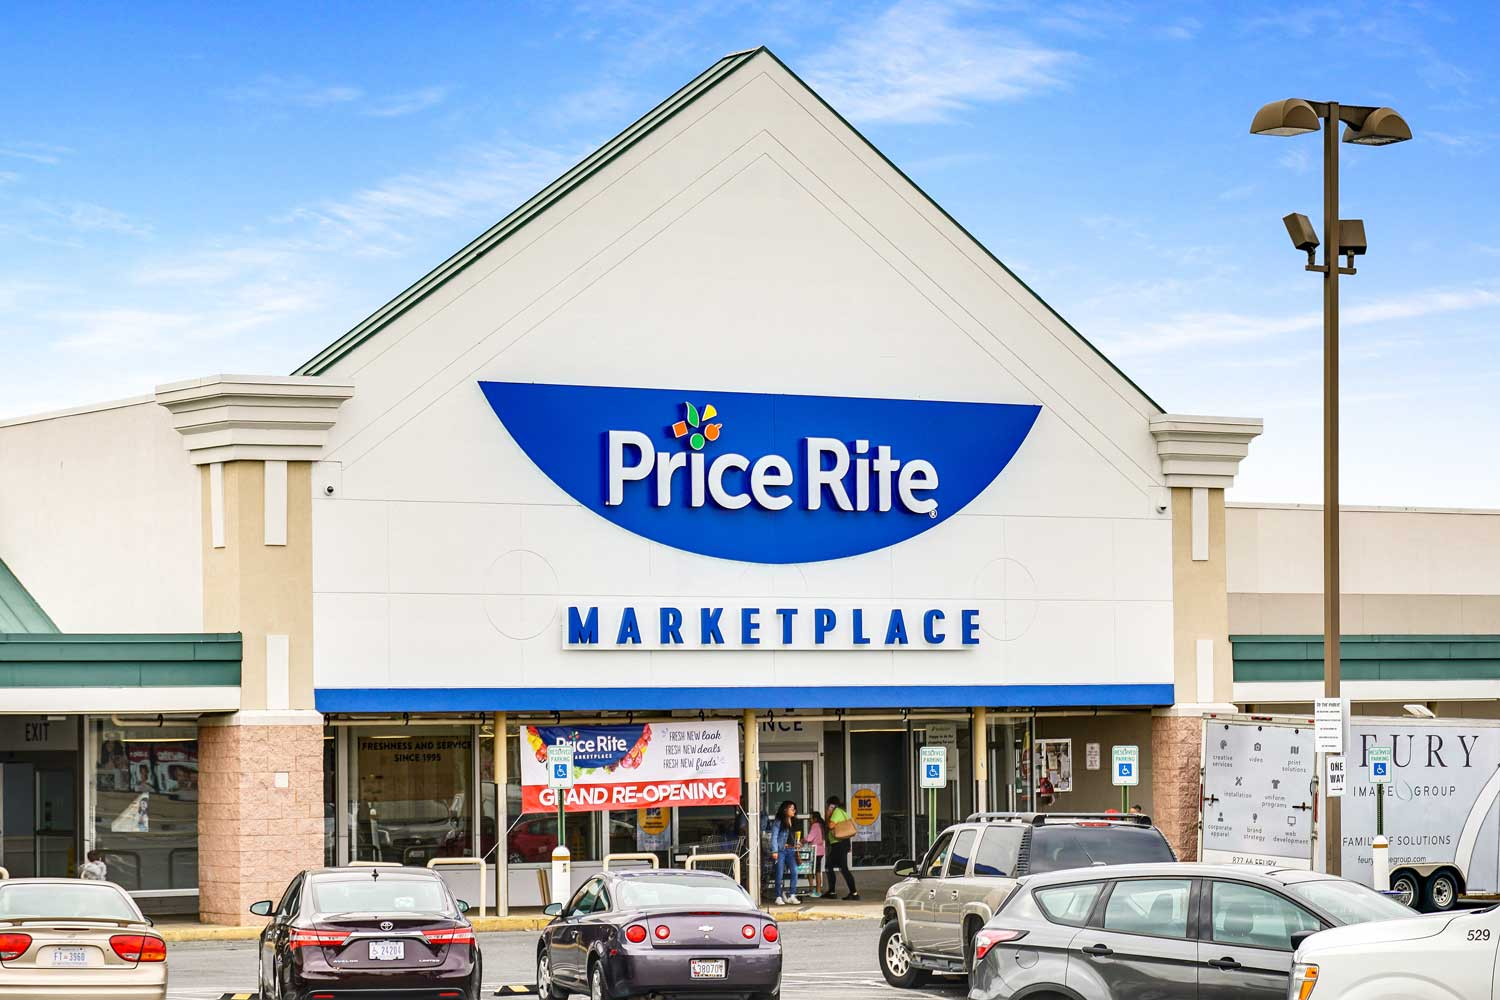 Price Rite Marketplace 5 minutes from Kirkwood Apartments in Hyattsville, MD